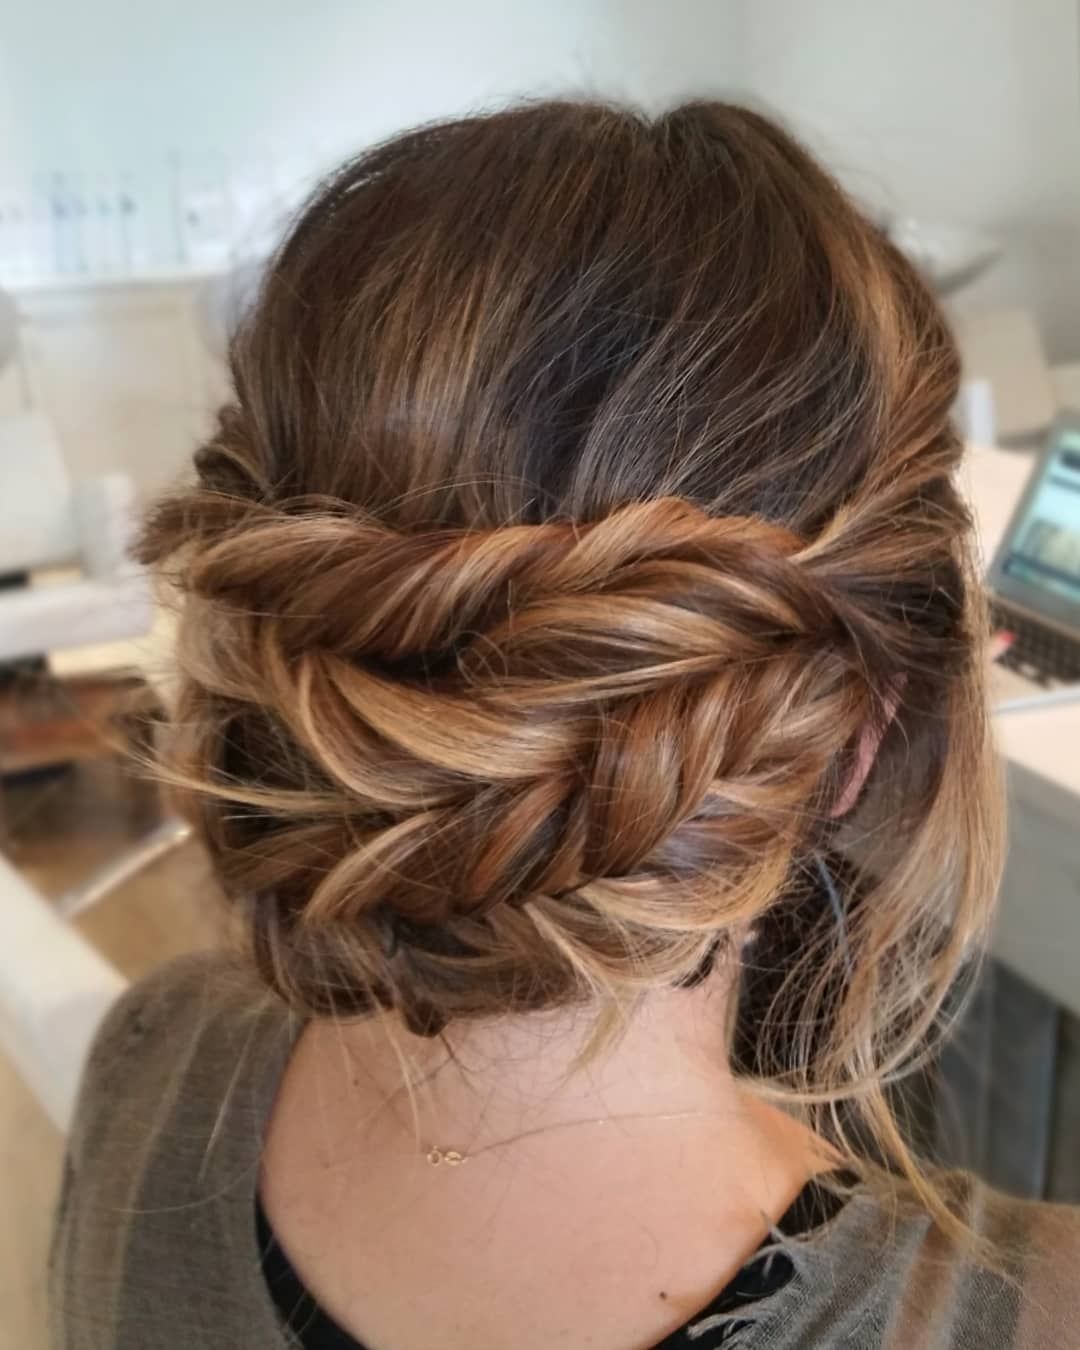 different wedding hair styles beautiful whimsical braided updo hair ideas wedding 28040